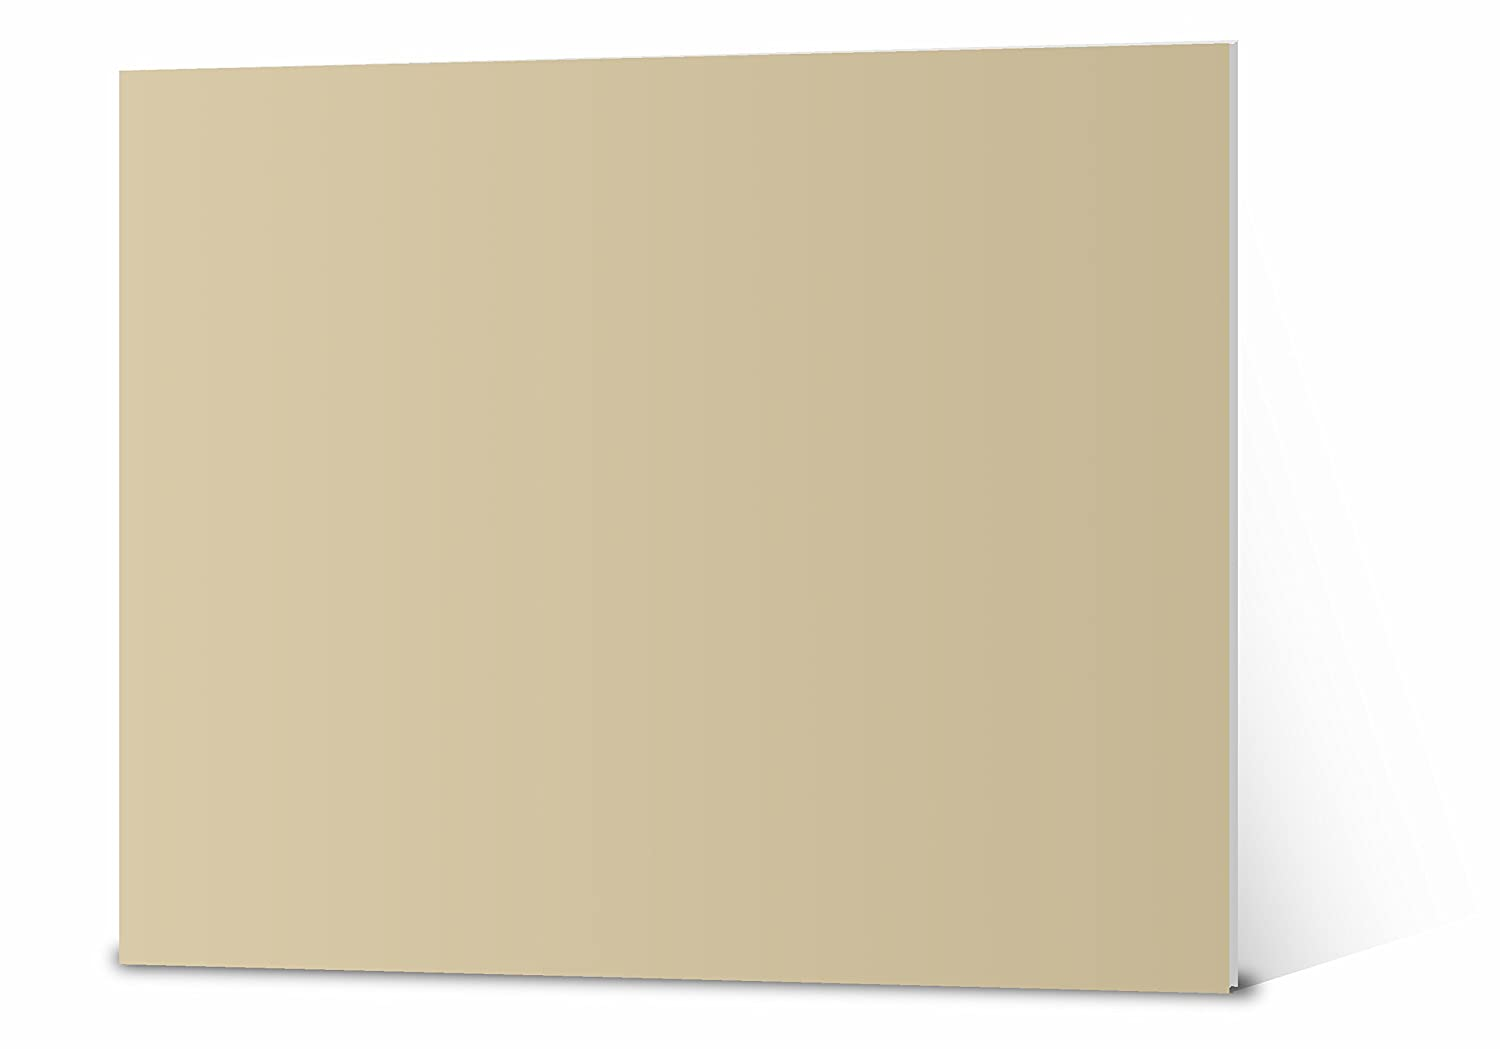 Elmer's Colored Foam Board, 20 x 30-Inch, 3/16-Inch Thick, Green, 10-Pack (950054) Elmer Products